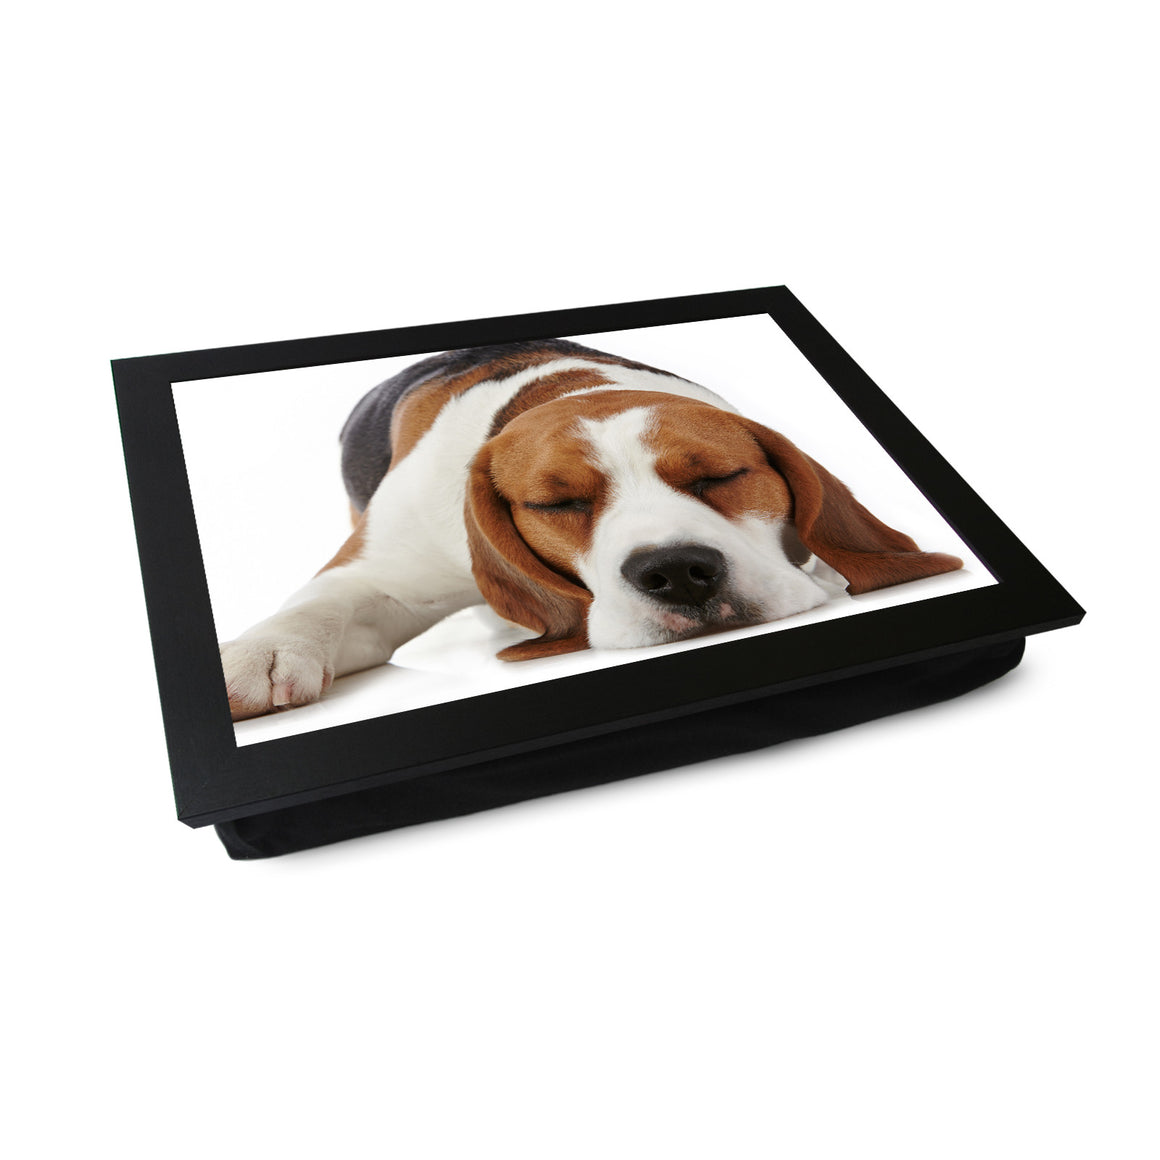 Sleeping Beagle Lap Tray - L0115